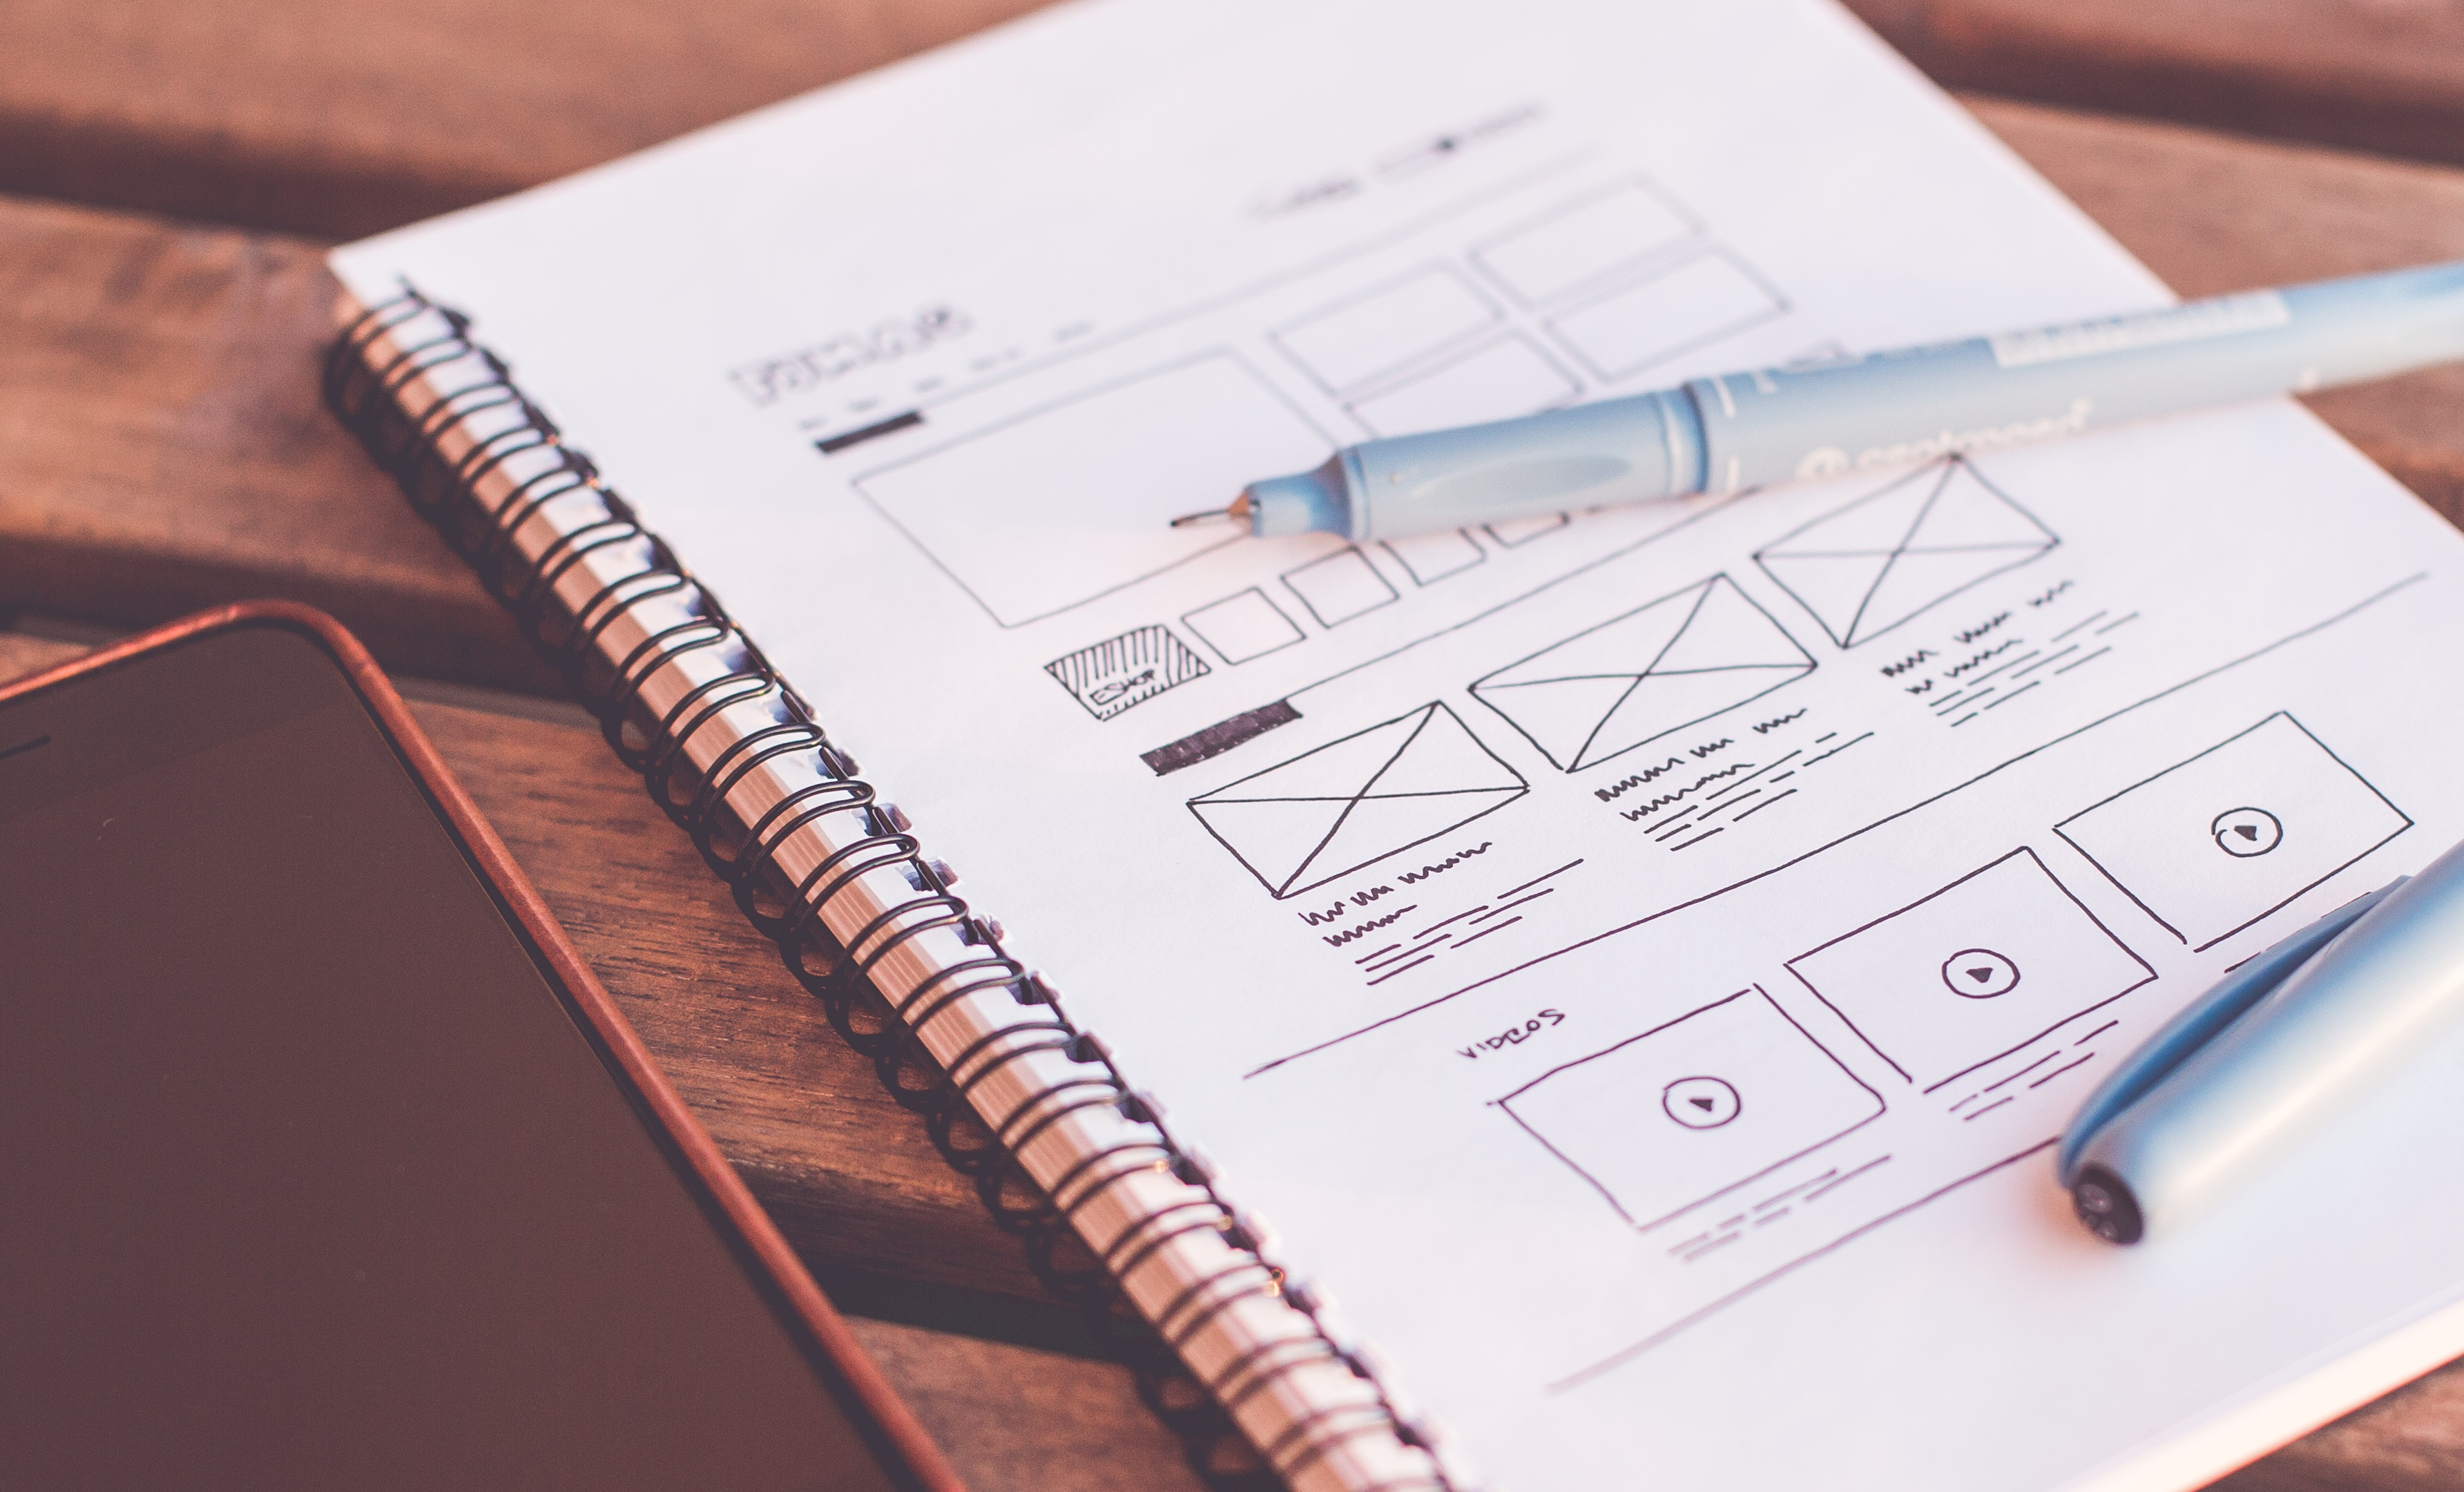 Missing on UX Design Mapping